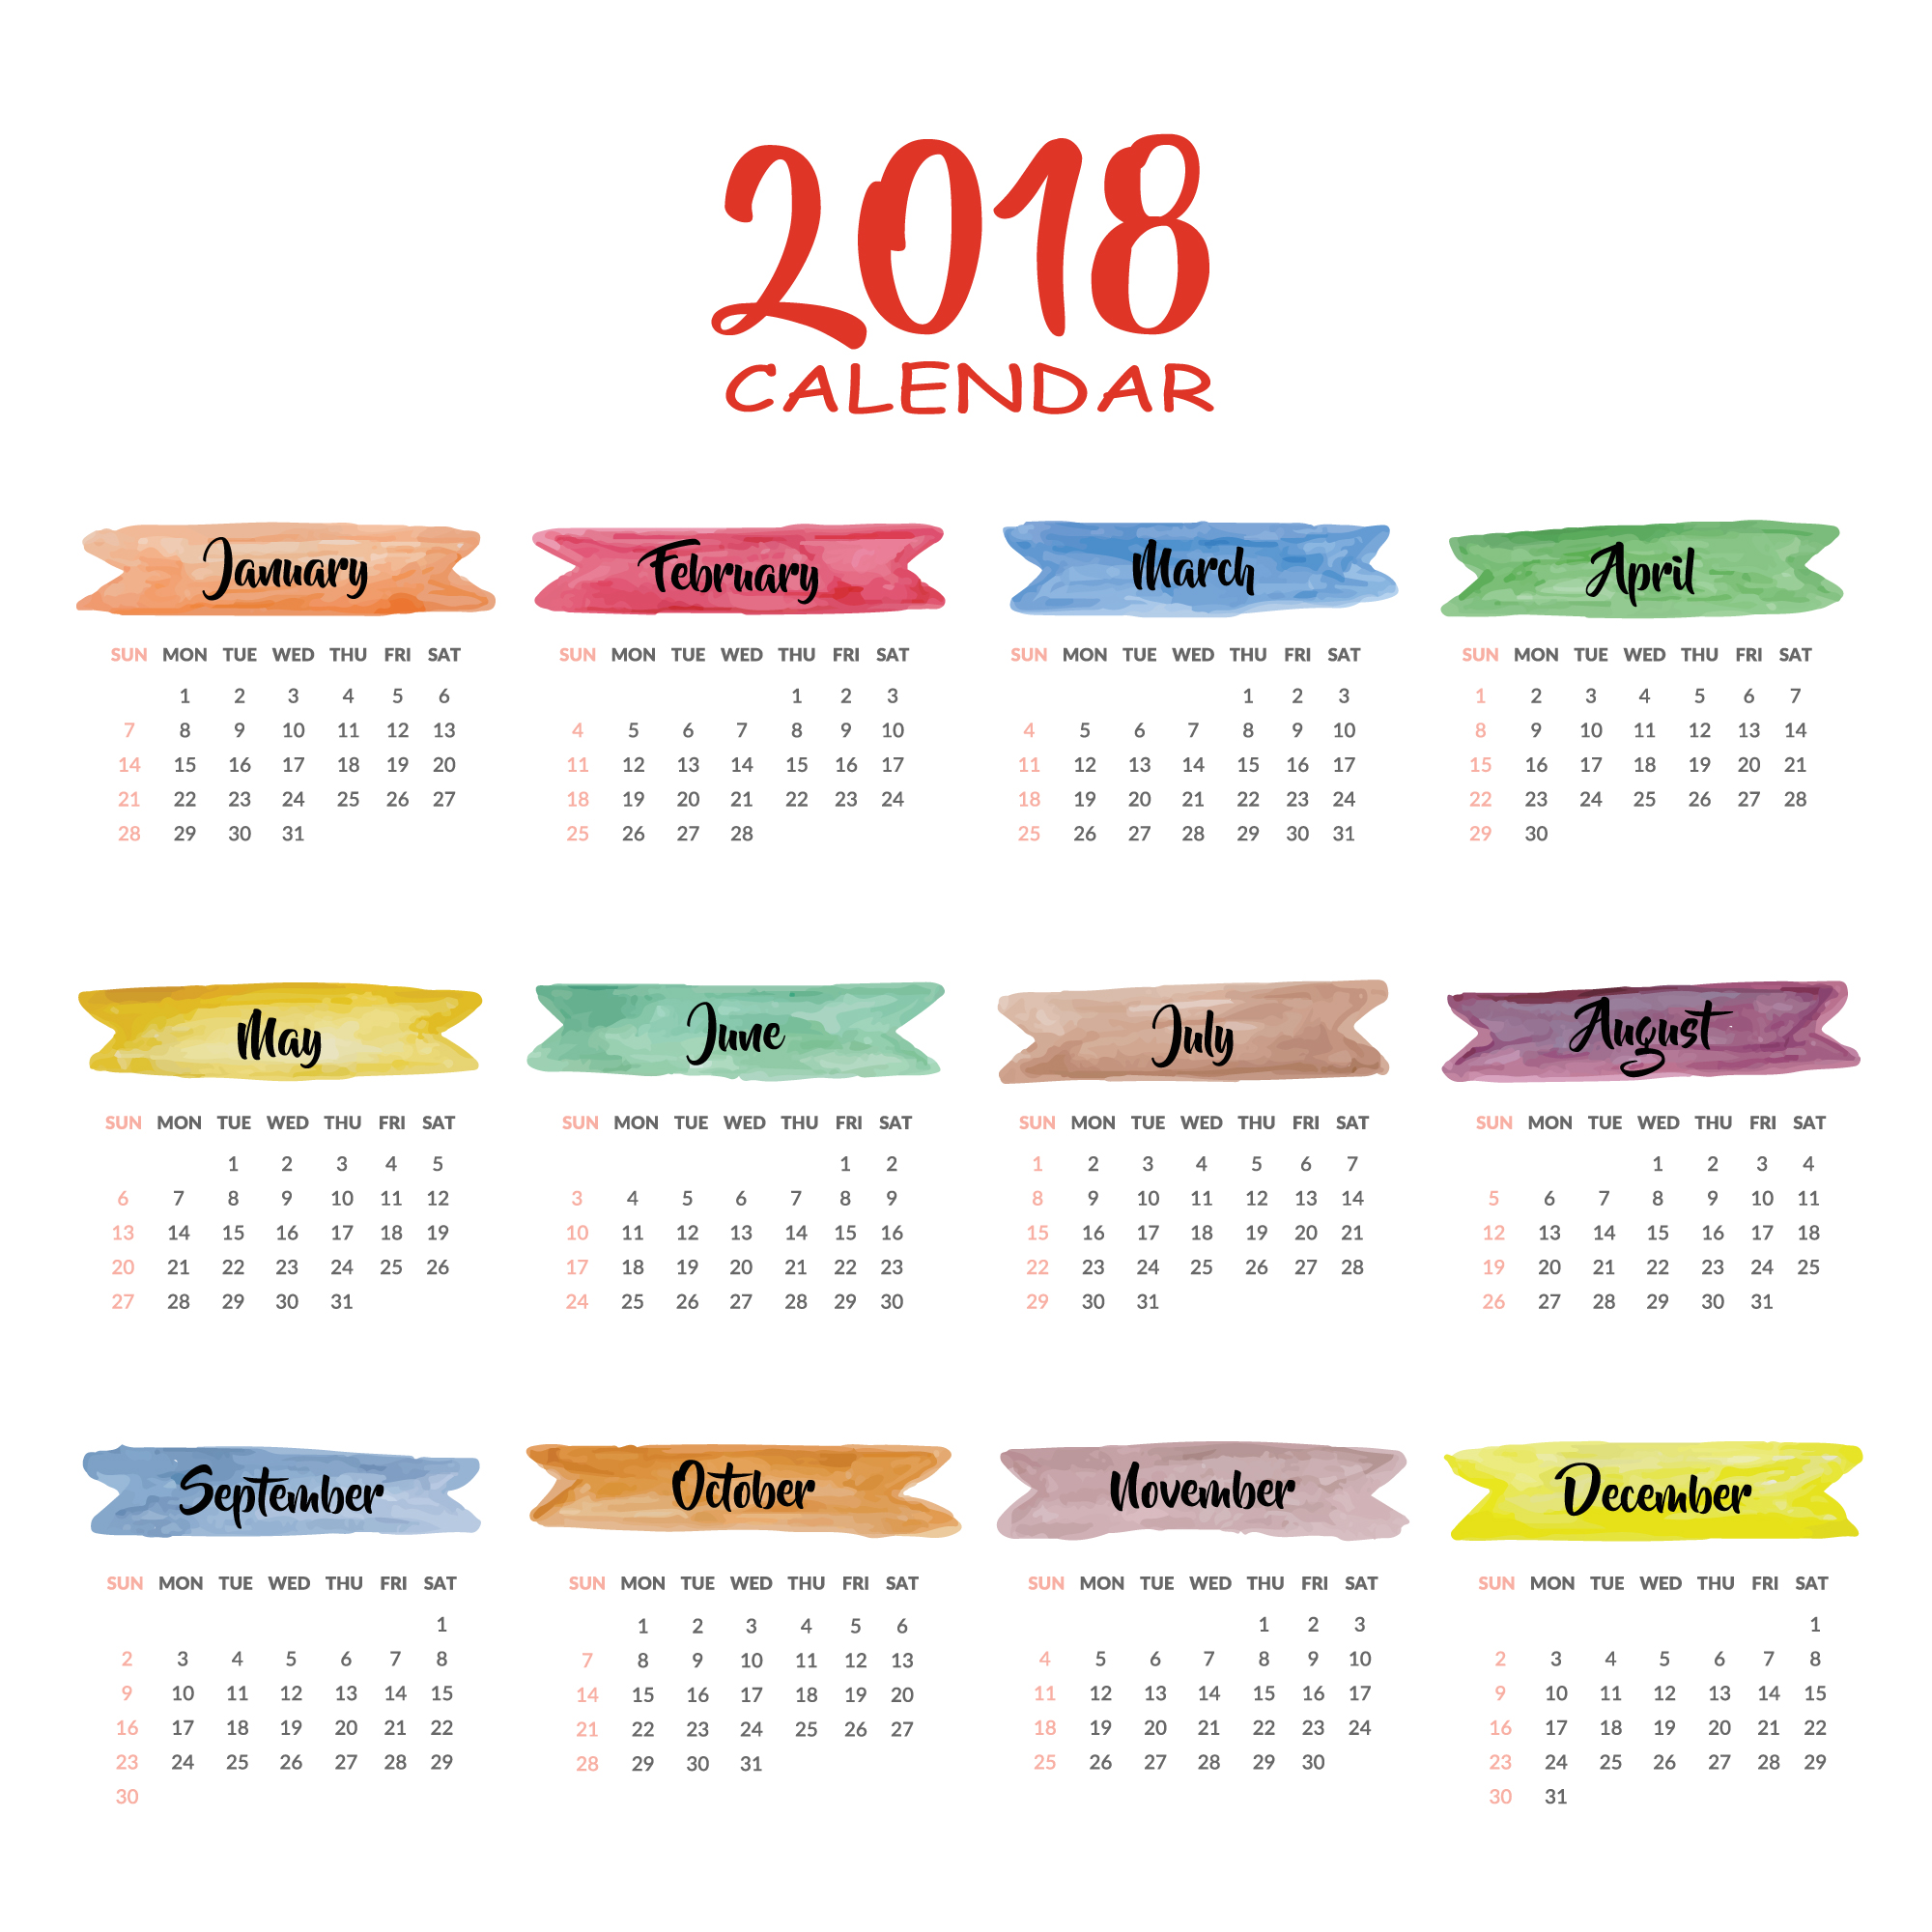 2018 Holiday Calendar Wallpaper View HD Image of 2018 2000x2000